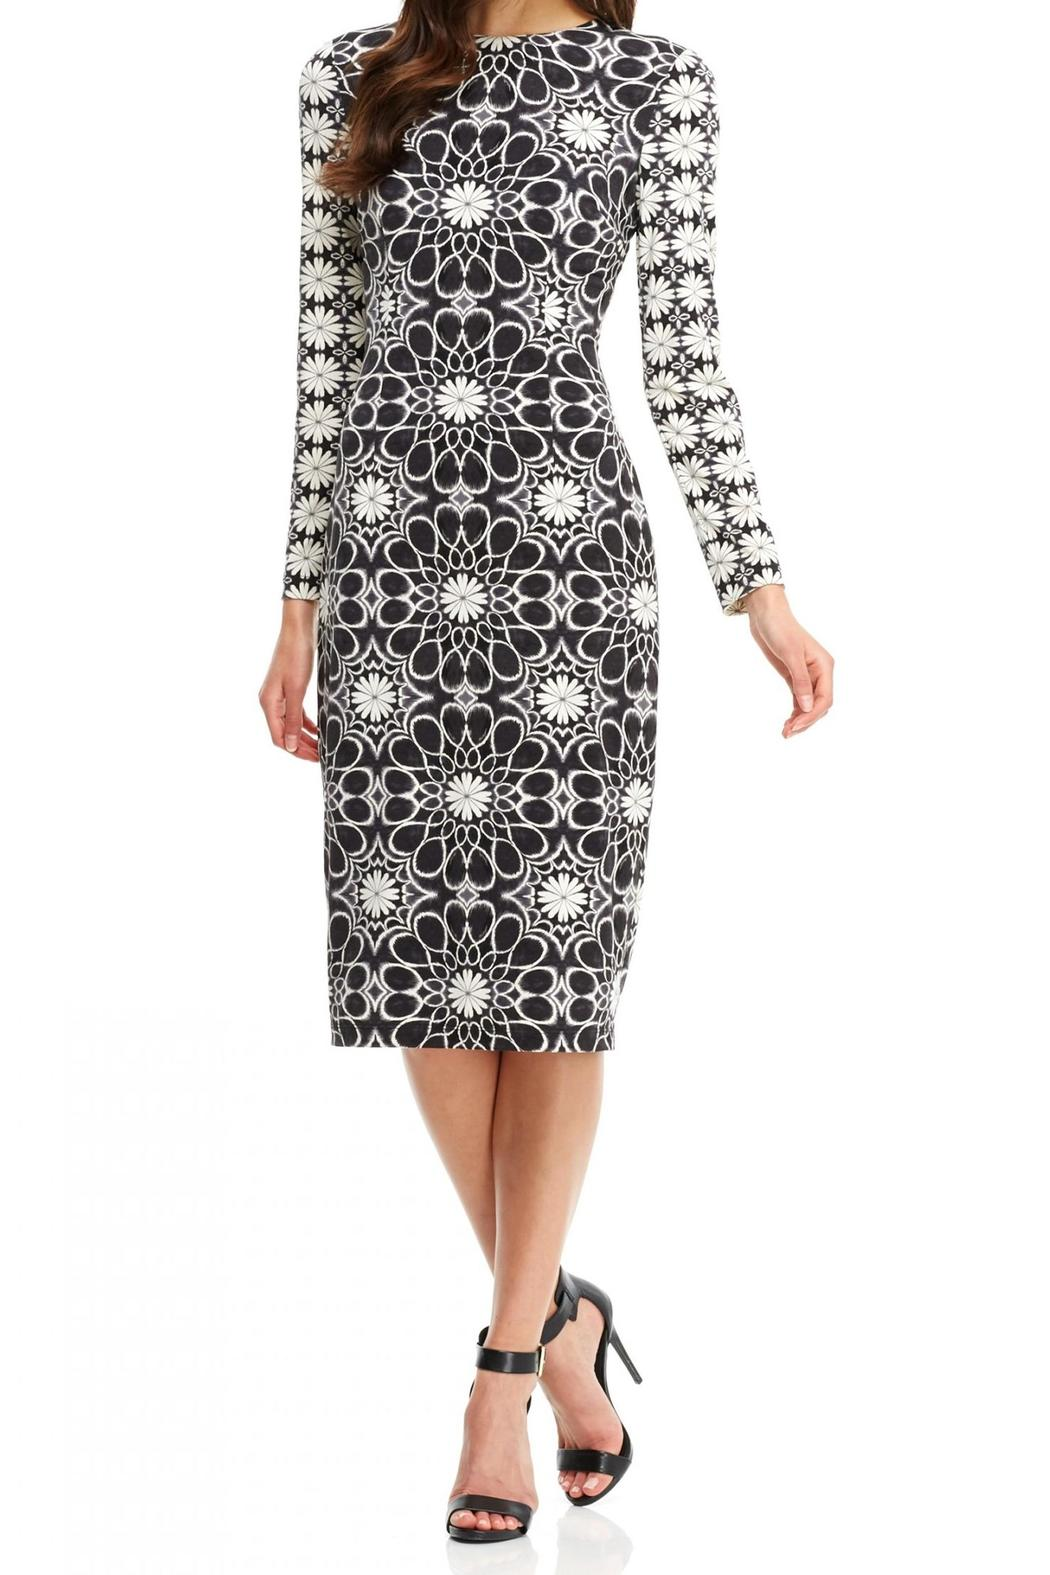 8e47af8d Maggy London Floral Midi Dress from New York by Violet's of Saratoga ...